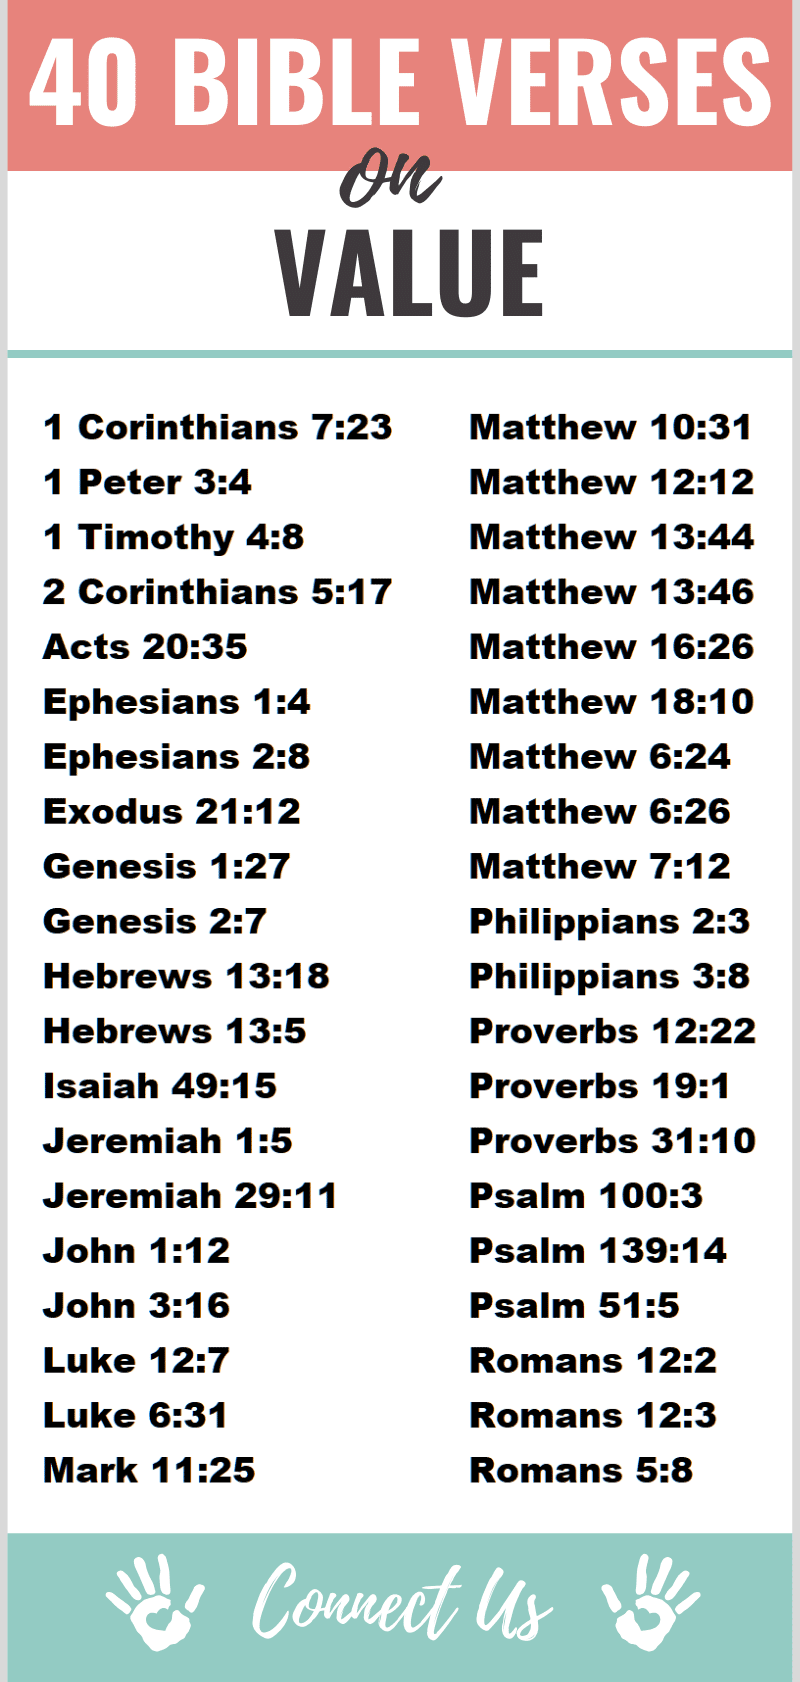 Bible Verses on Value